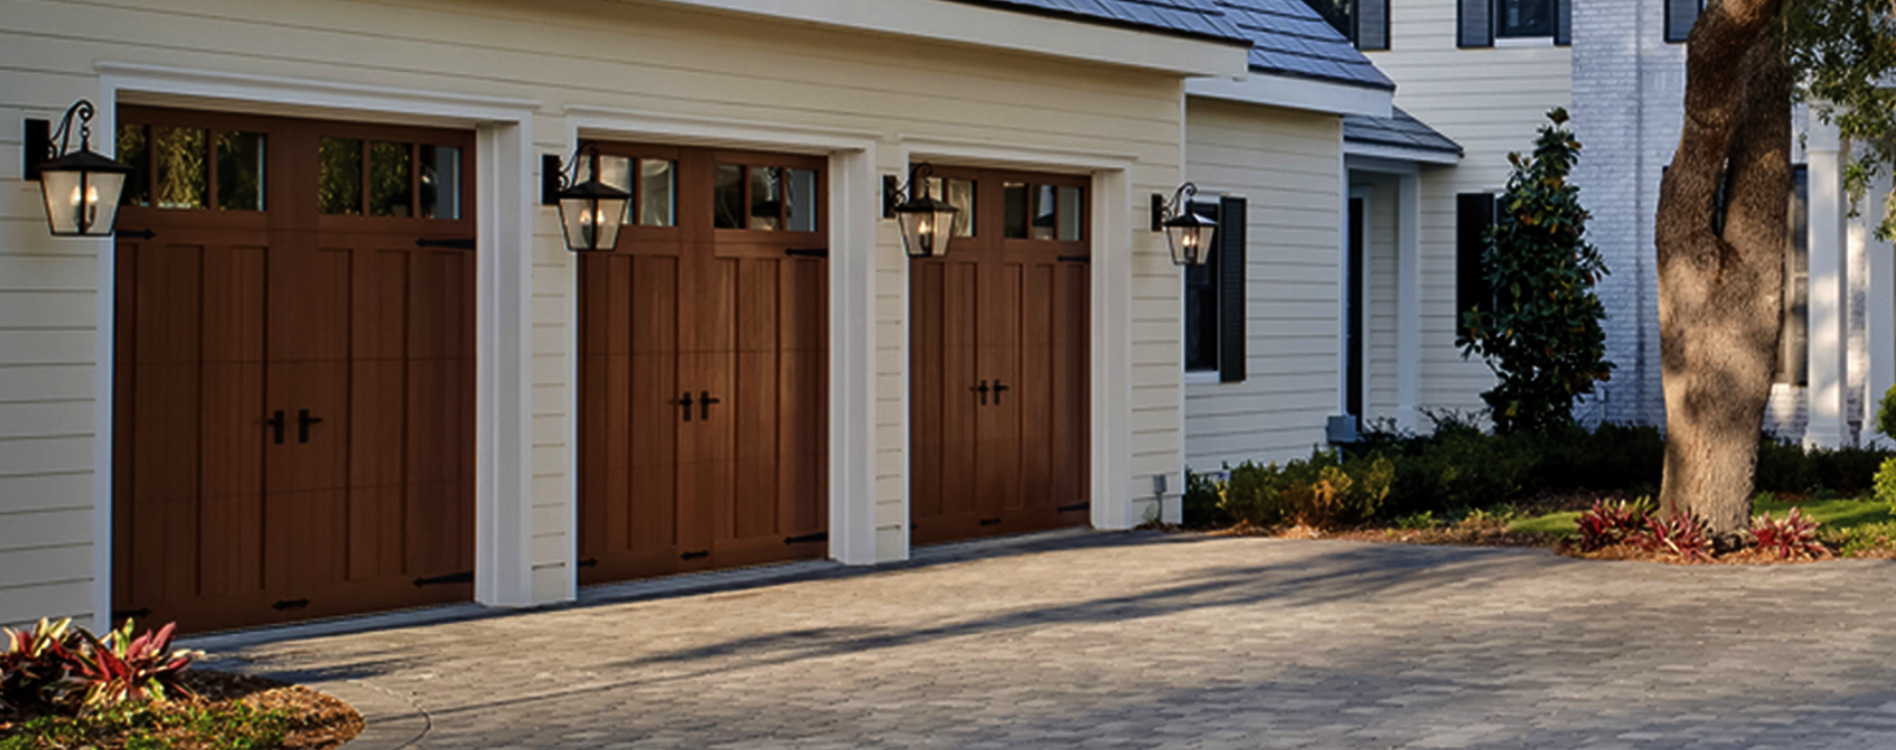 House Design Clopay Troy Ohio Buy Clopay Garage Doors Online